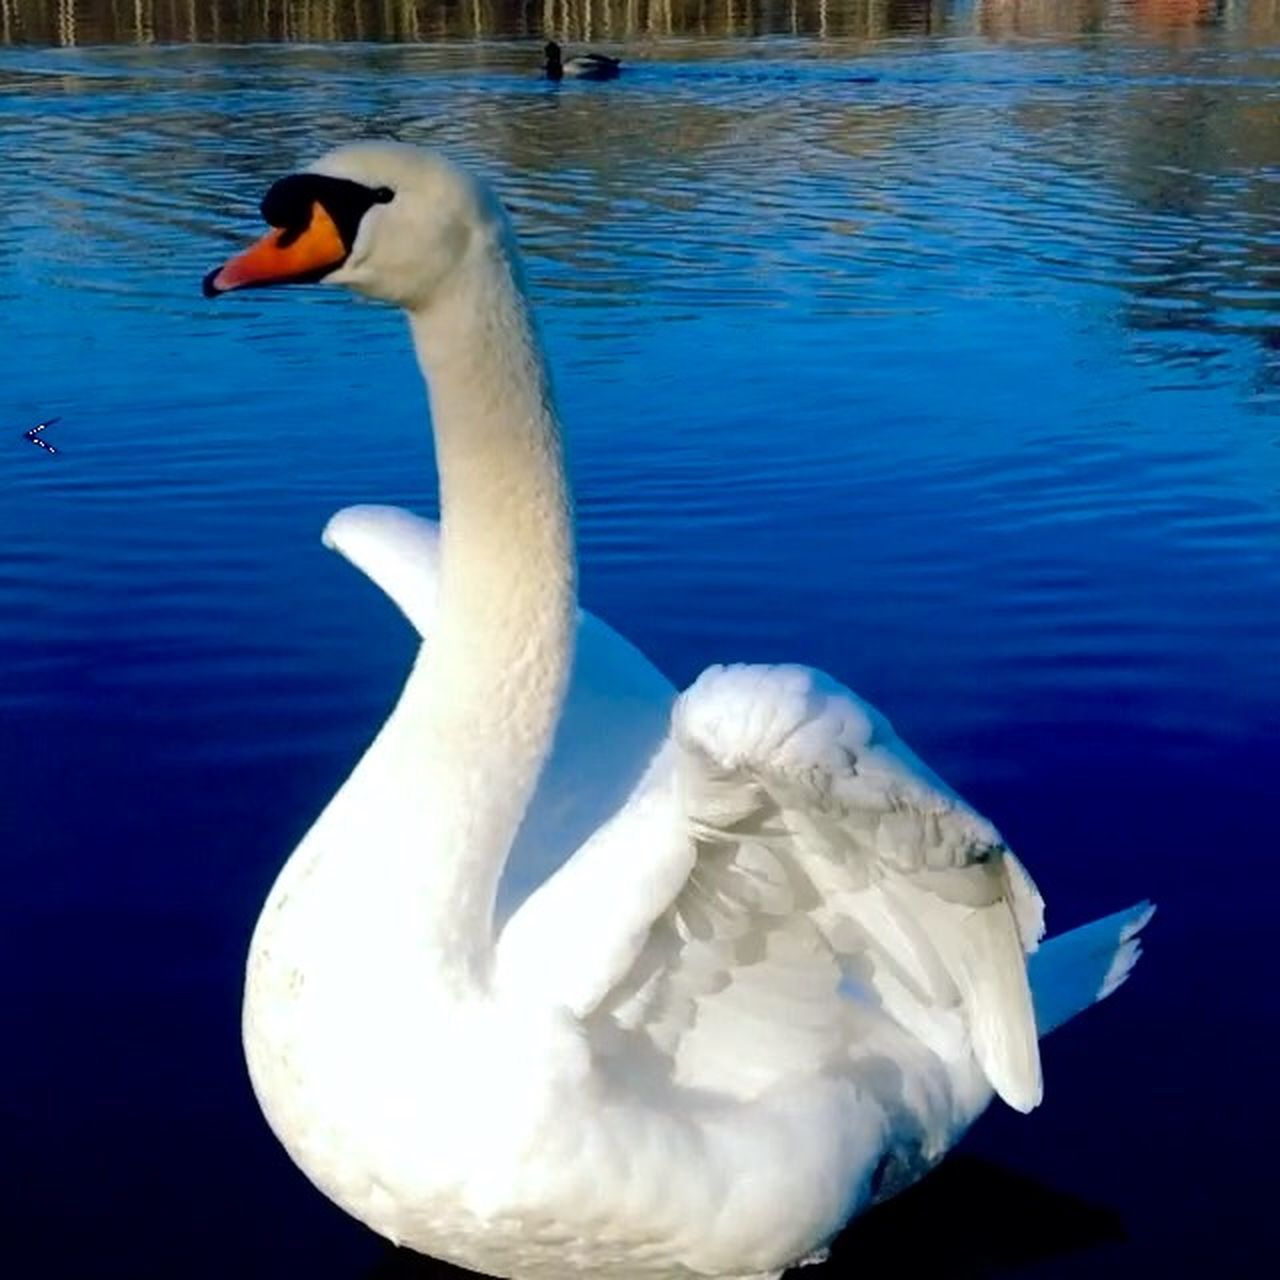 animals in the wild, one animal, bird, animal themes, animal wildlife, swan, white color, lake, water, beak, water bird, no people, day, swimming, nature, outdoors, close-up, beauty in nature